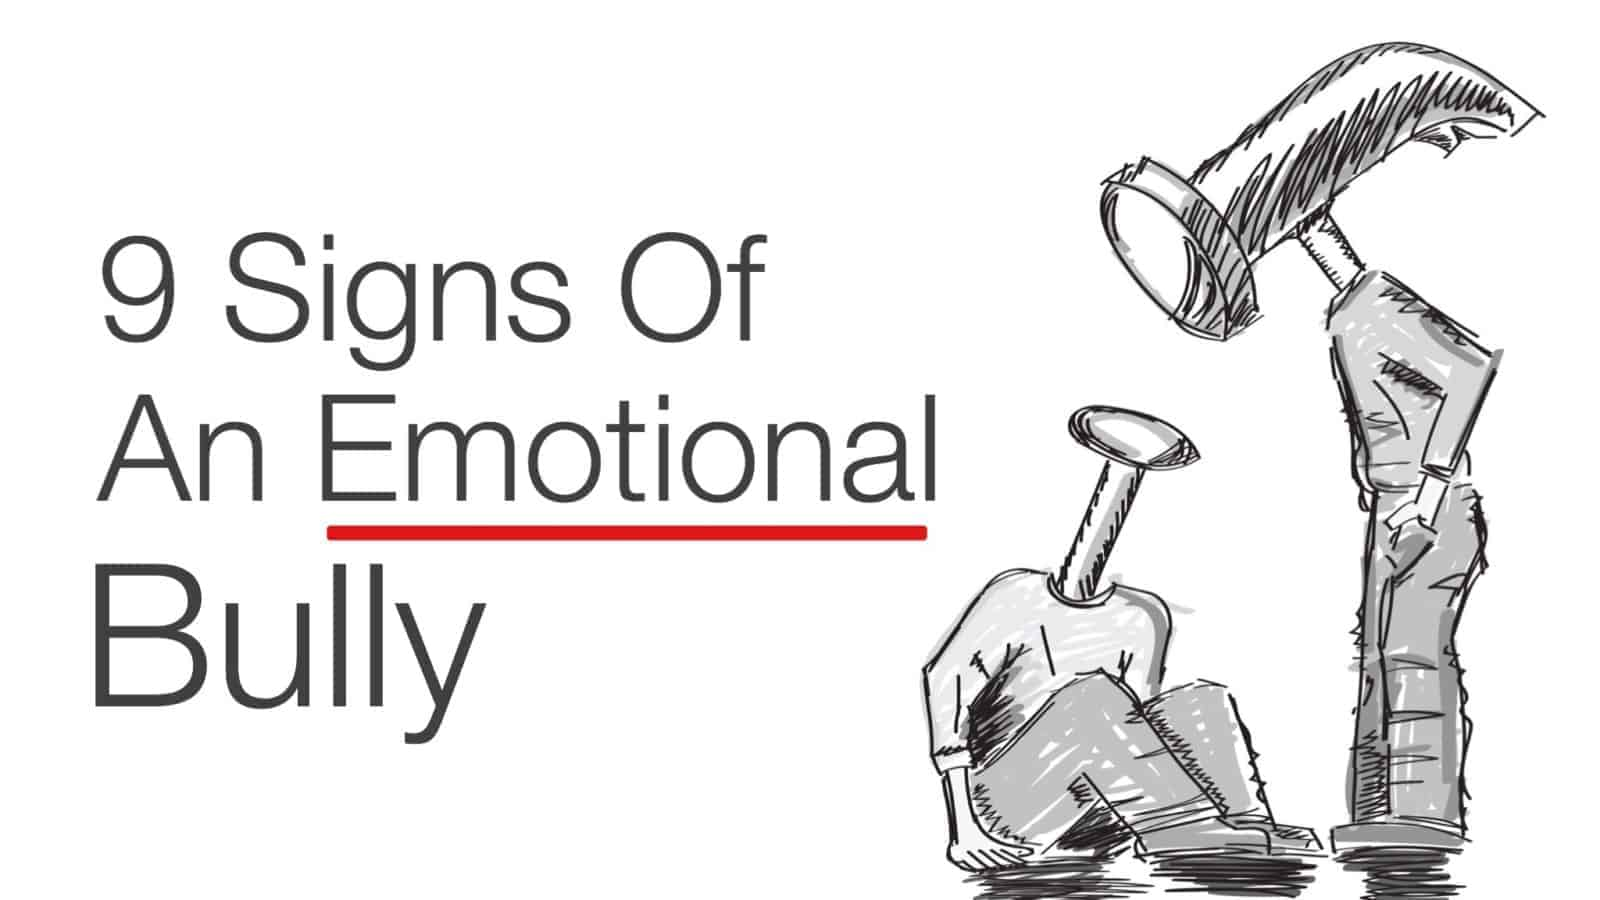 9 Signs Of An Emotional Bully And How To Stop Them